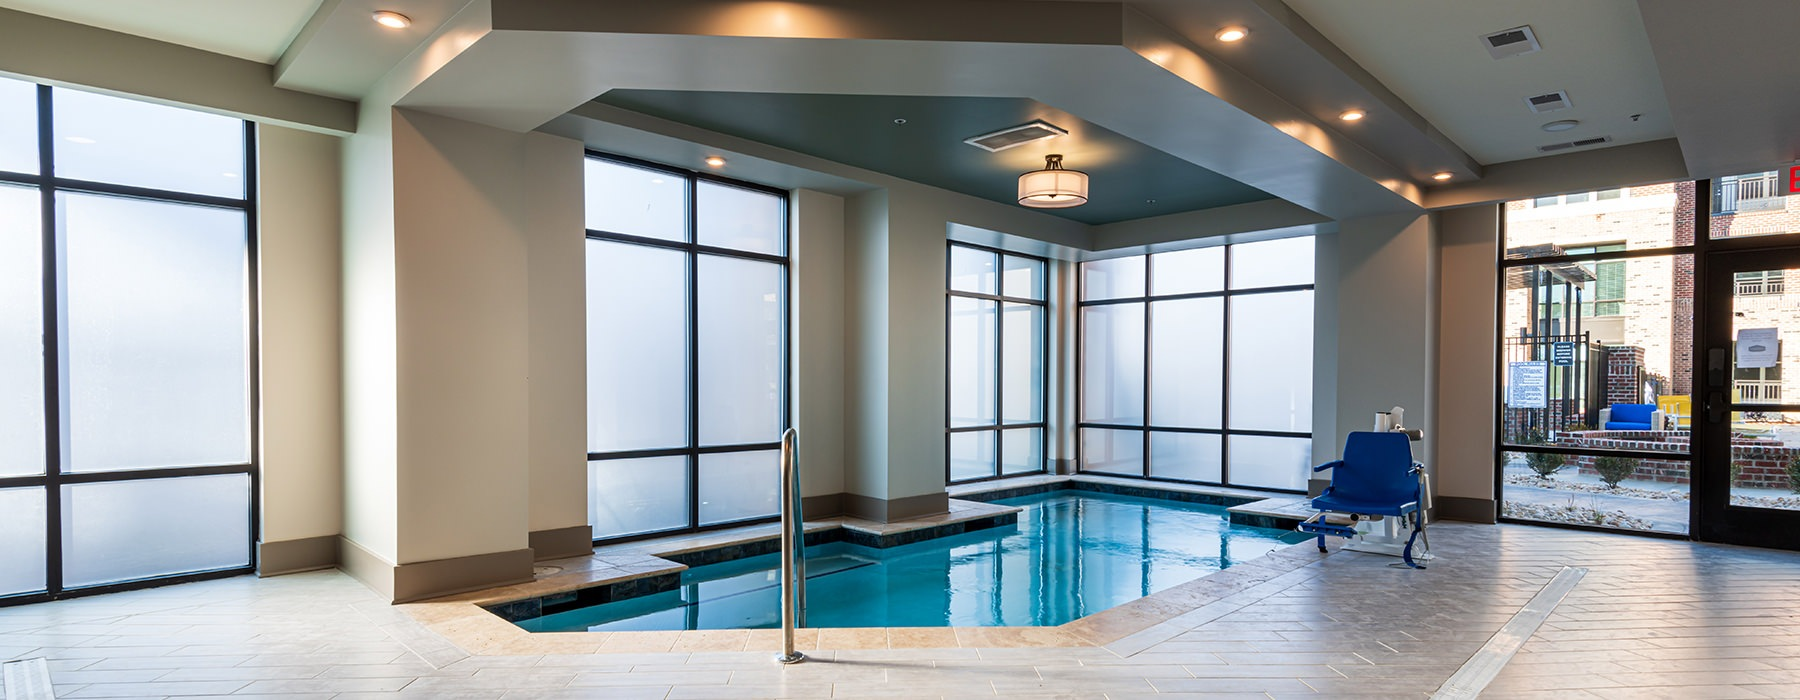 Indoor pool connected to the sauna and fitness center